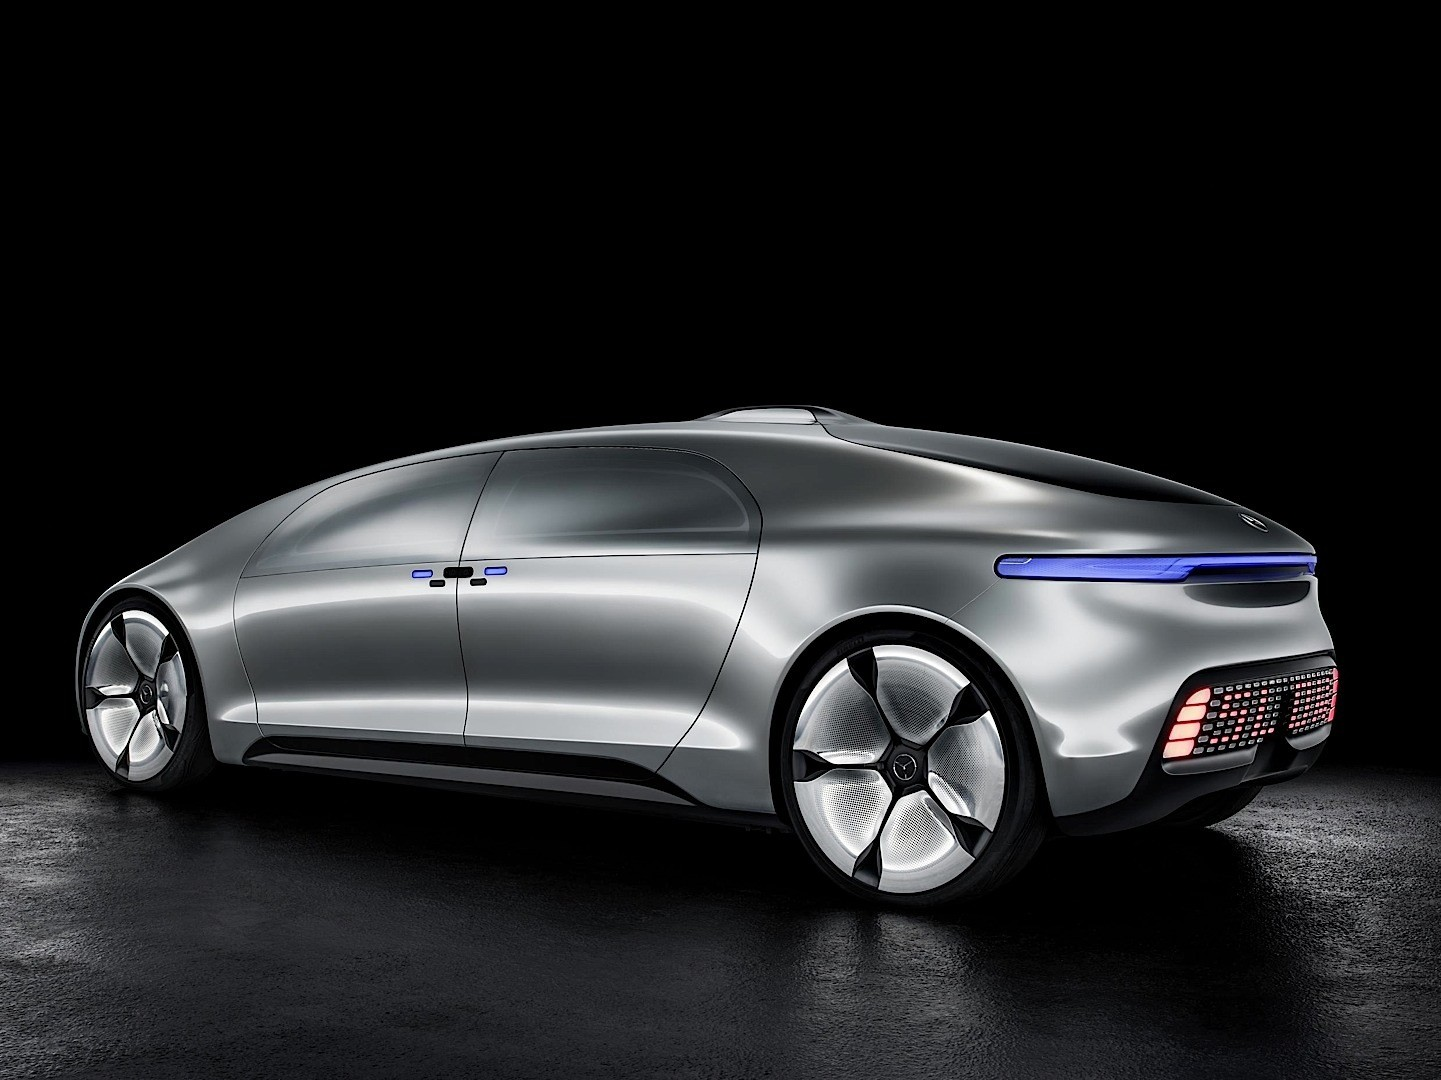 Mercedes benz unveils f 015 mystery concept at 2015 ces for Mercedes benz future